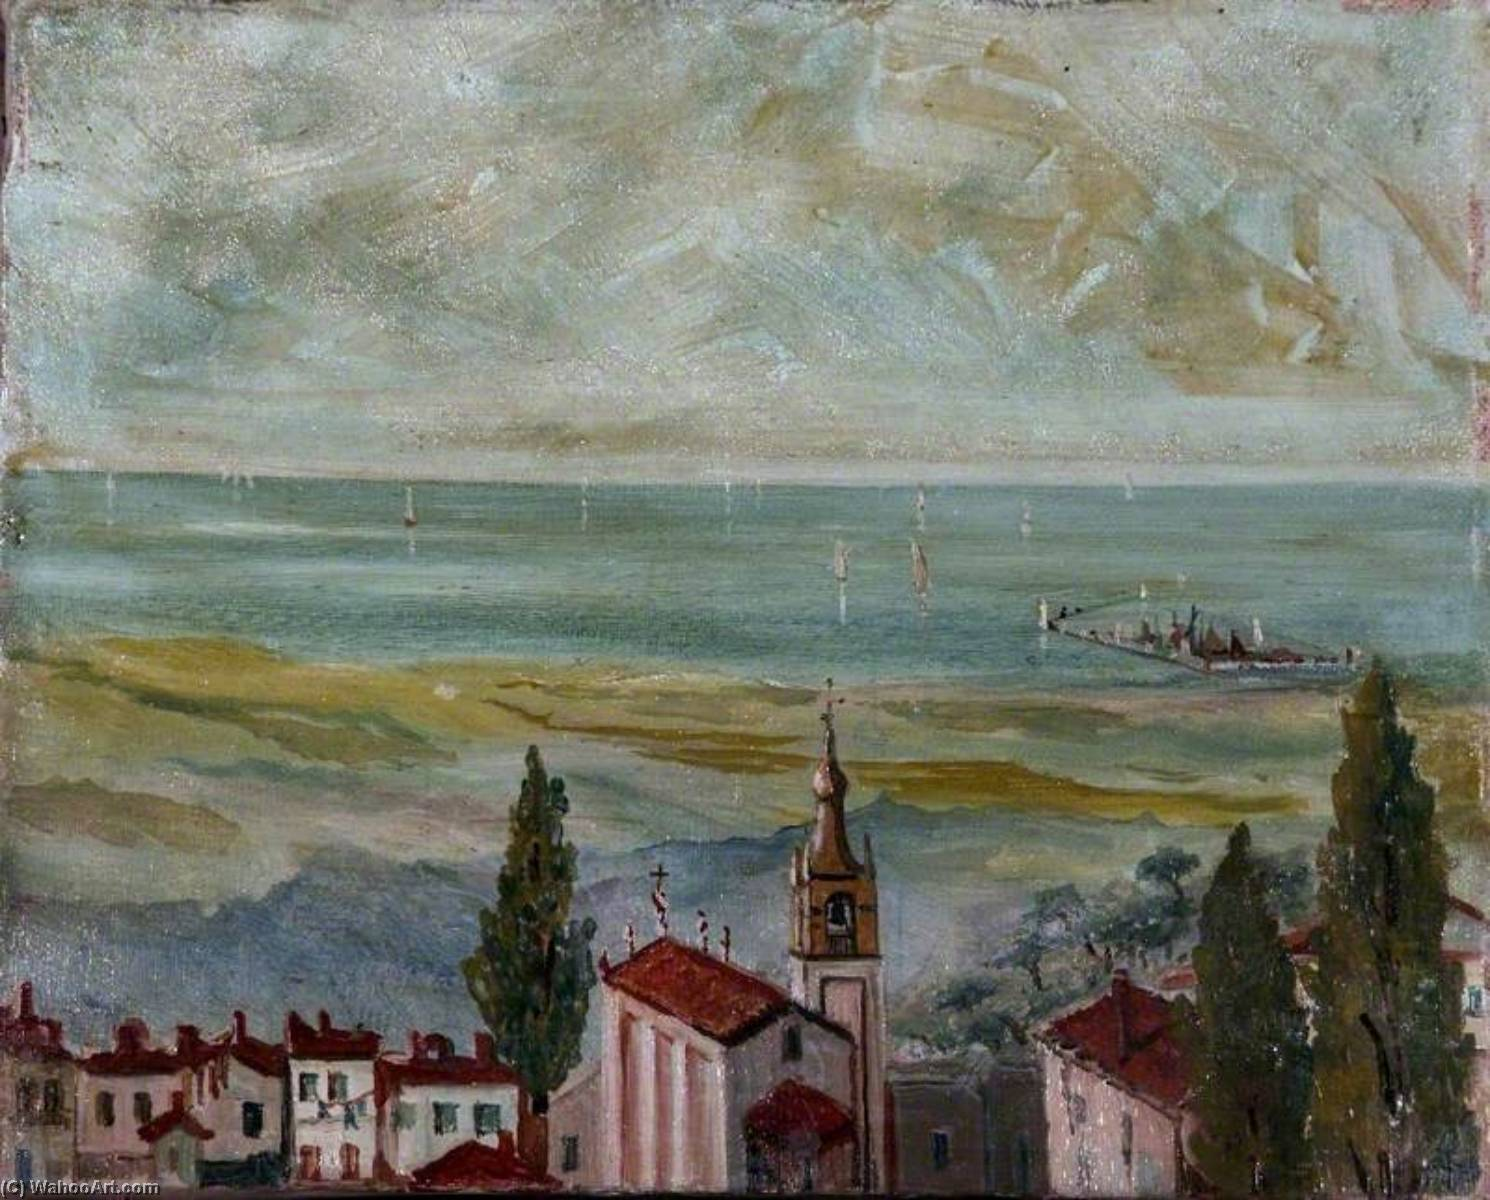 European Coastal Town Looking Out to Sea, 1912 by Caroline Emily Gray Hill | Art Reproductions Caroline Emily Gray Hill | WahooArt.com